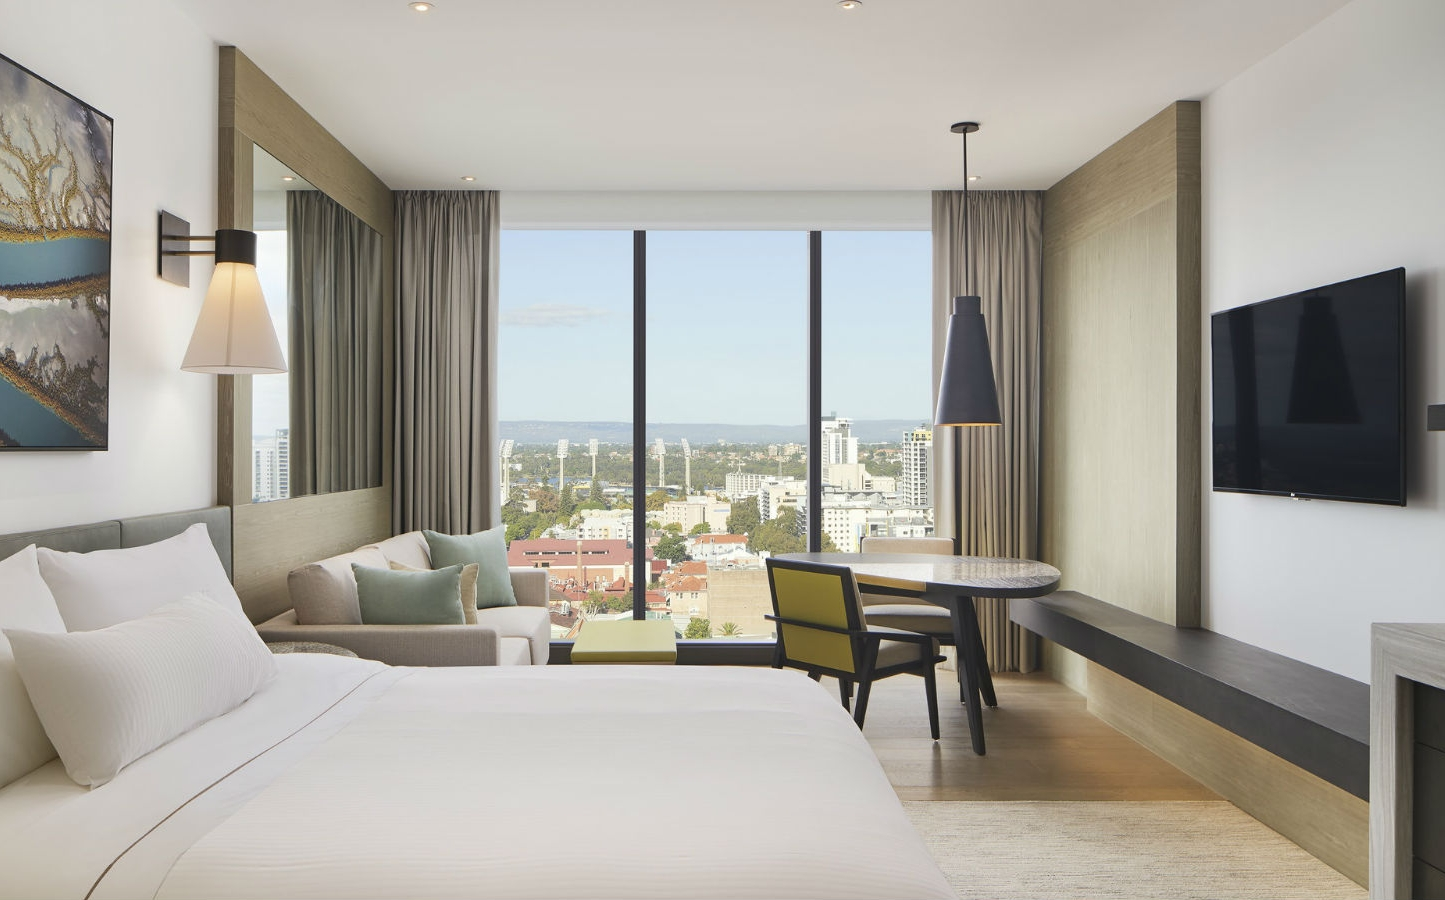 The Westin Opens in Perth as Hotel Construction Boom Continues